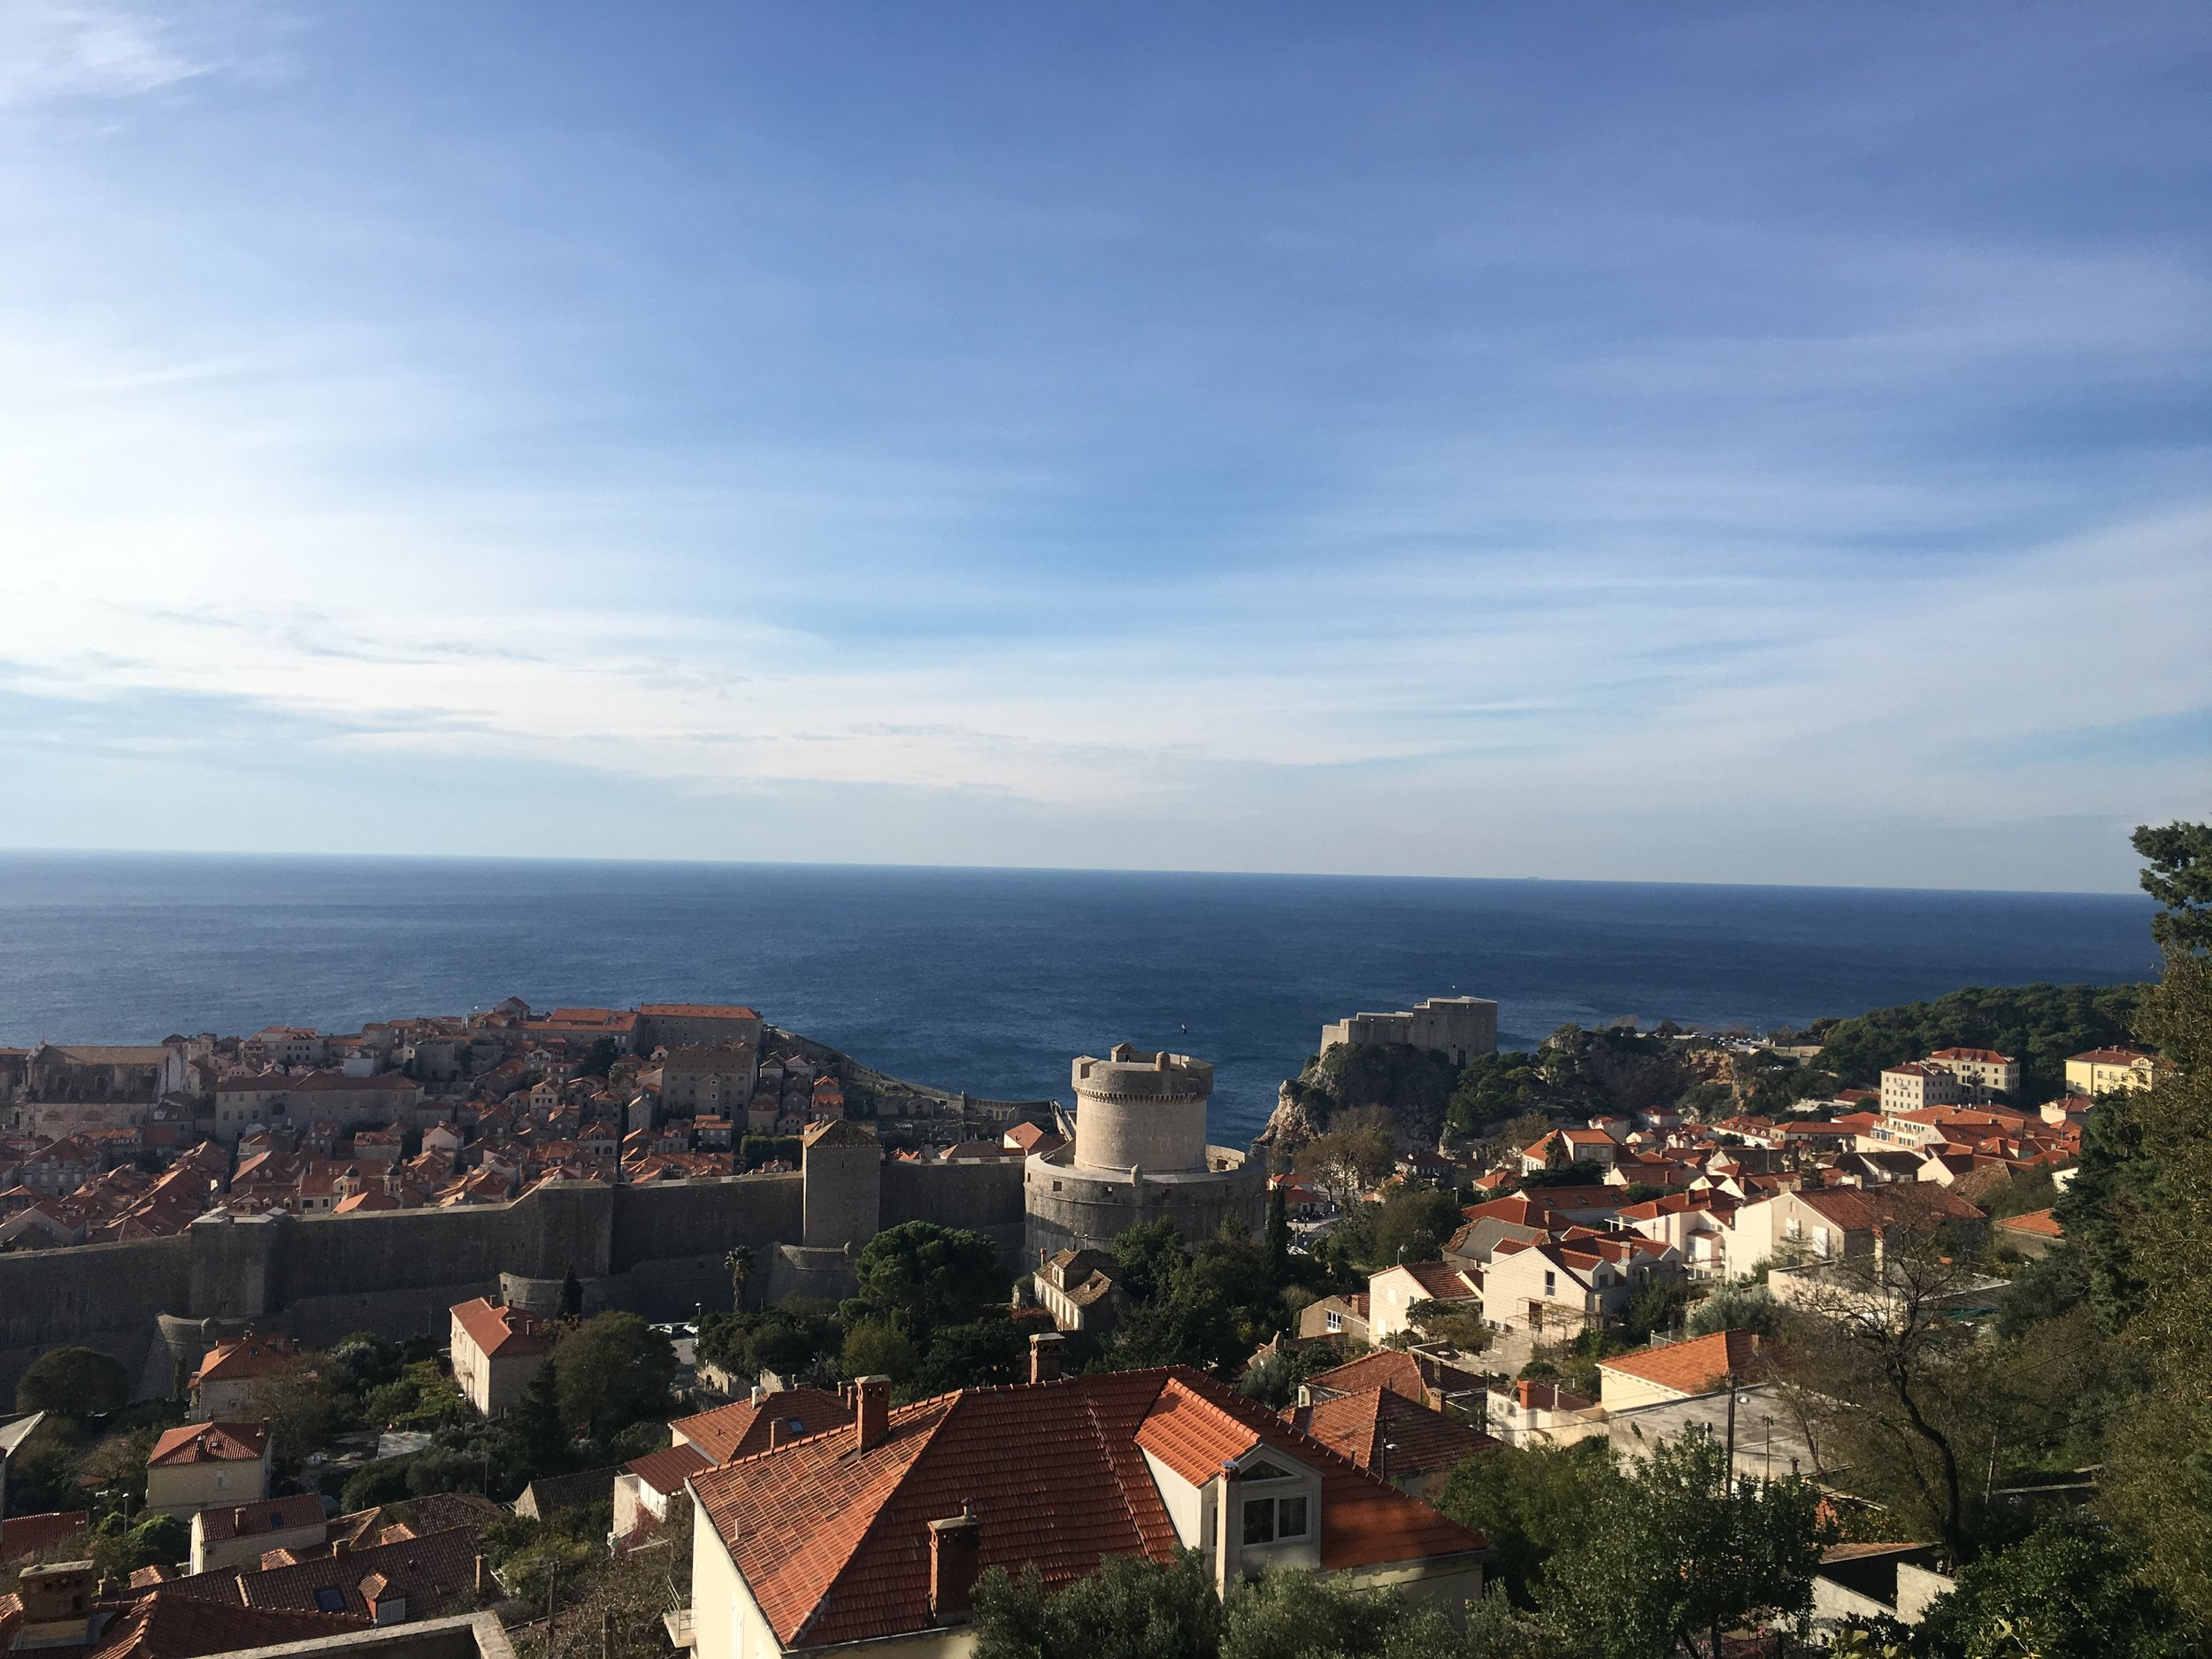 The old town of Dubrovnik is a UNESCO World Heritage Site.